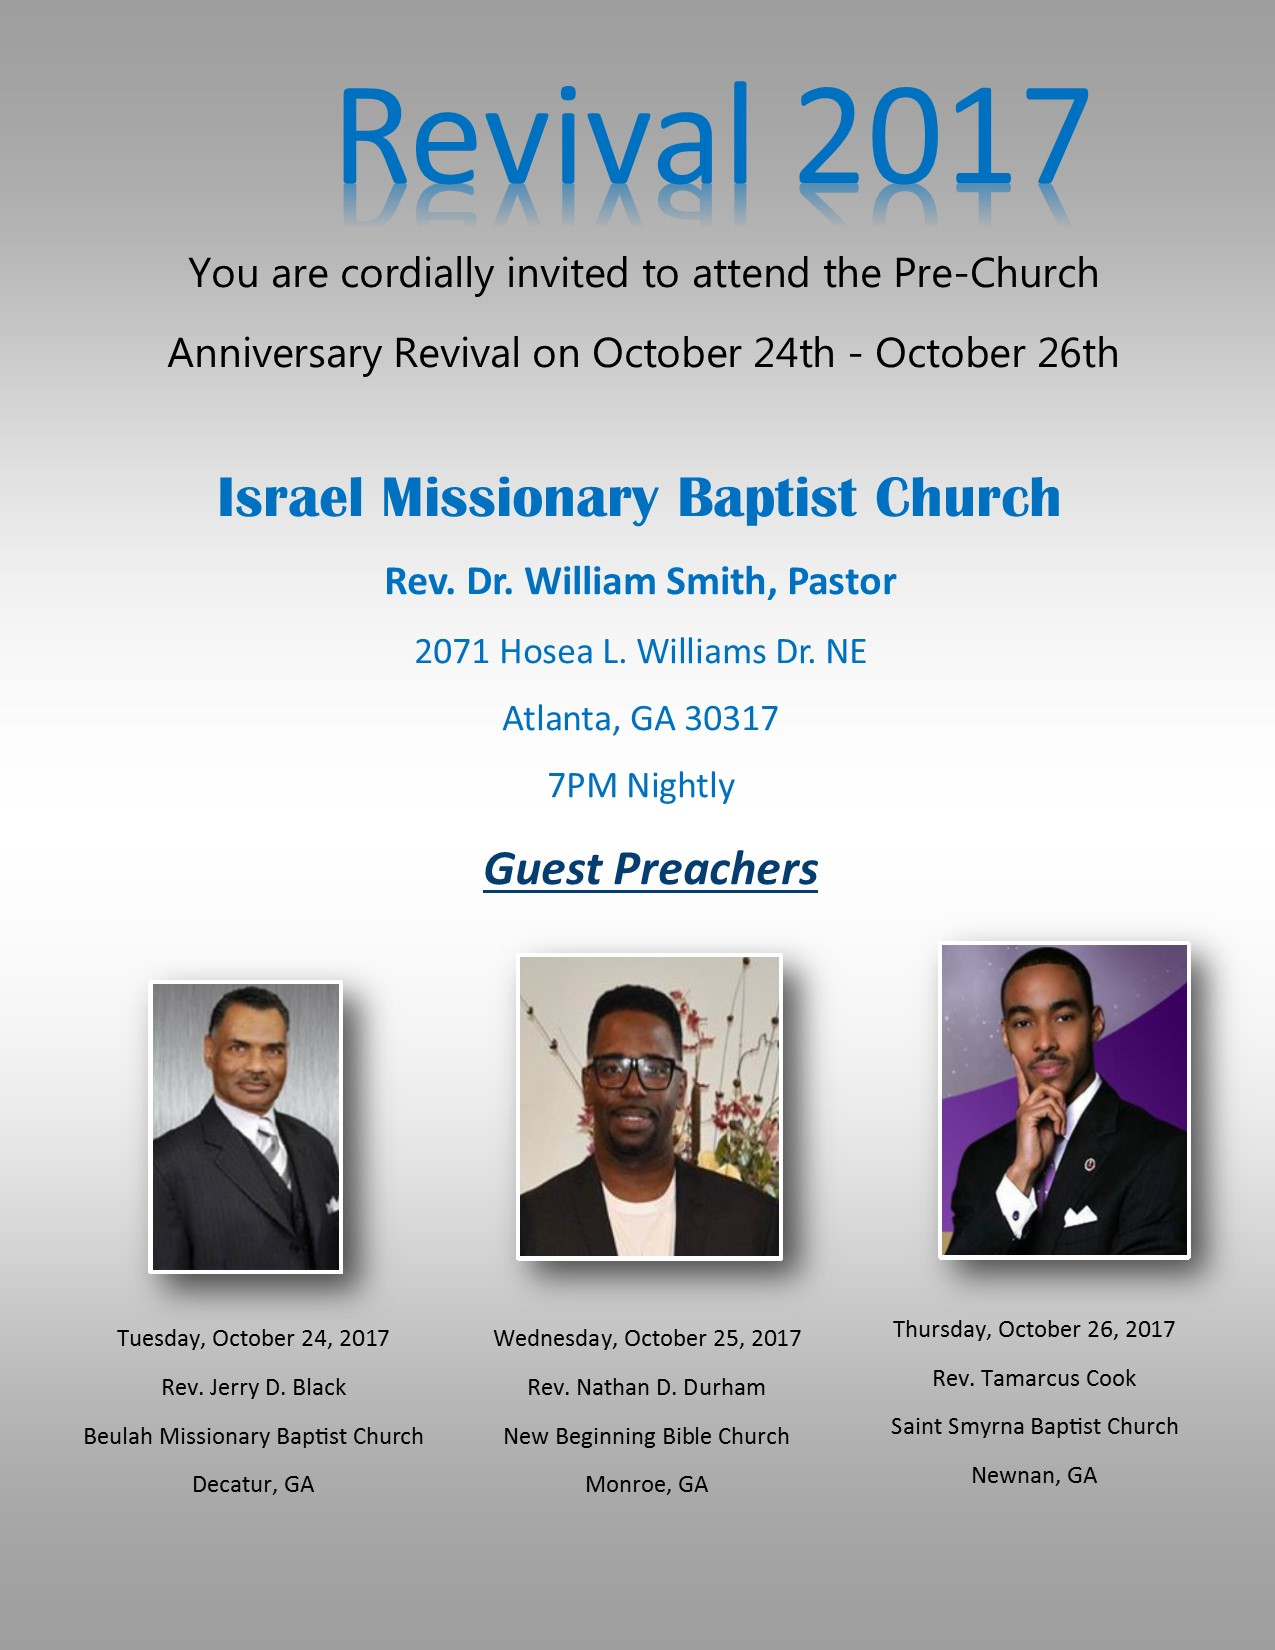 Israel Missionary Baptist Church Revival